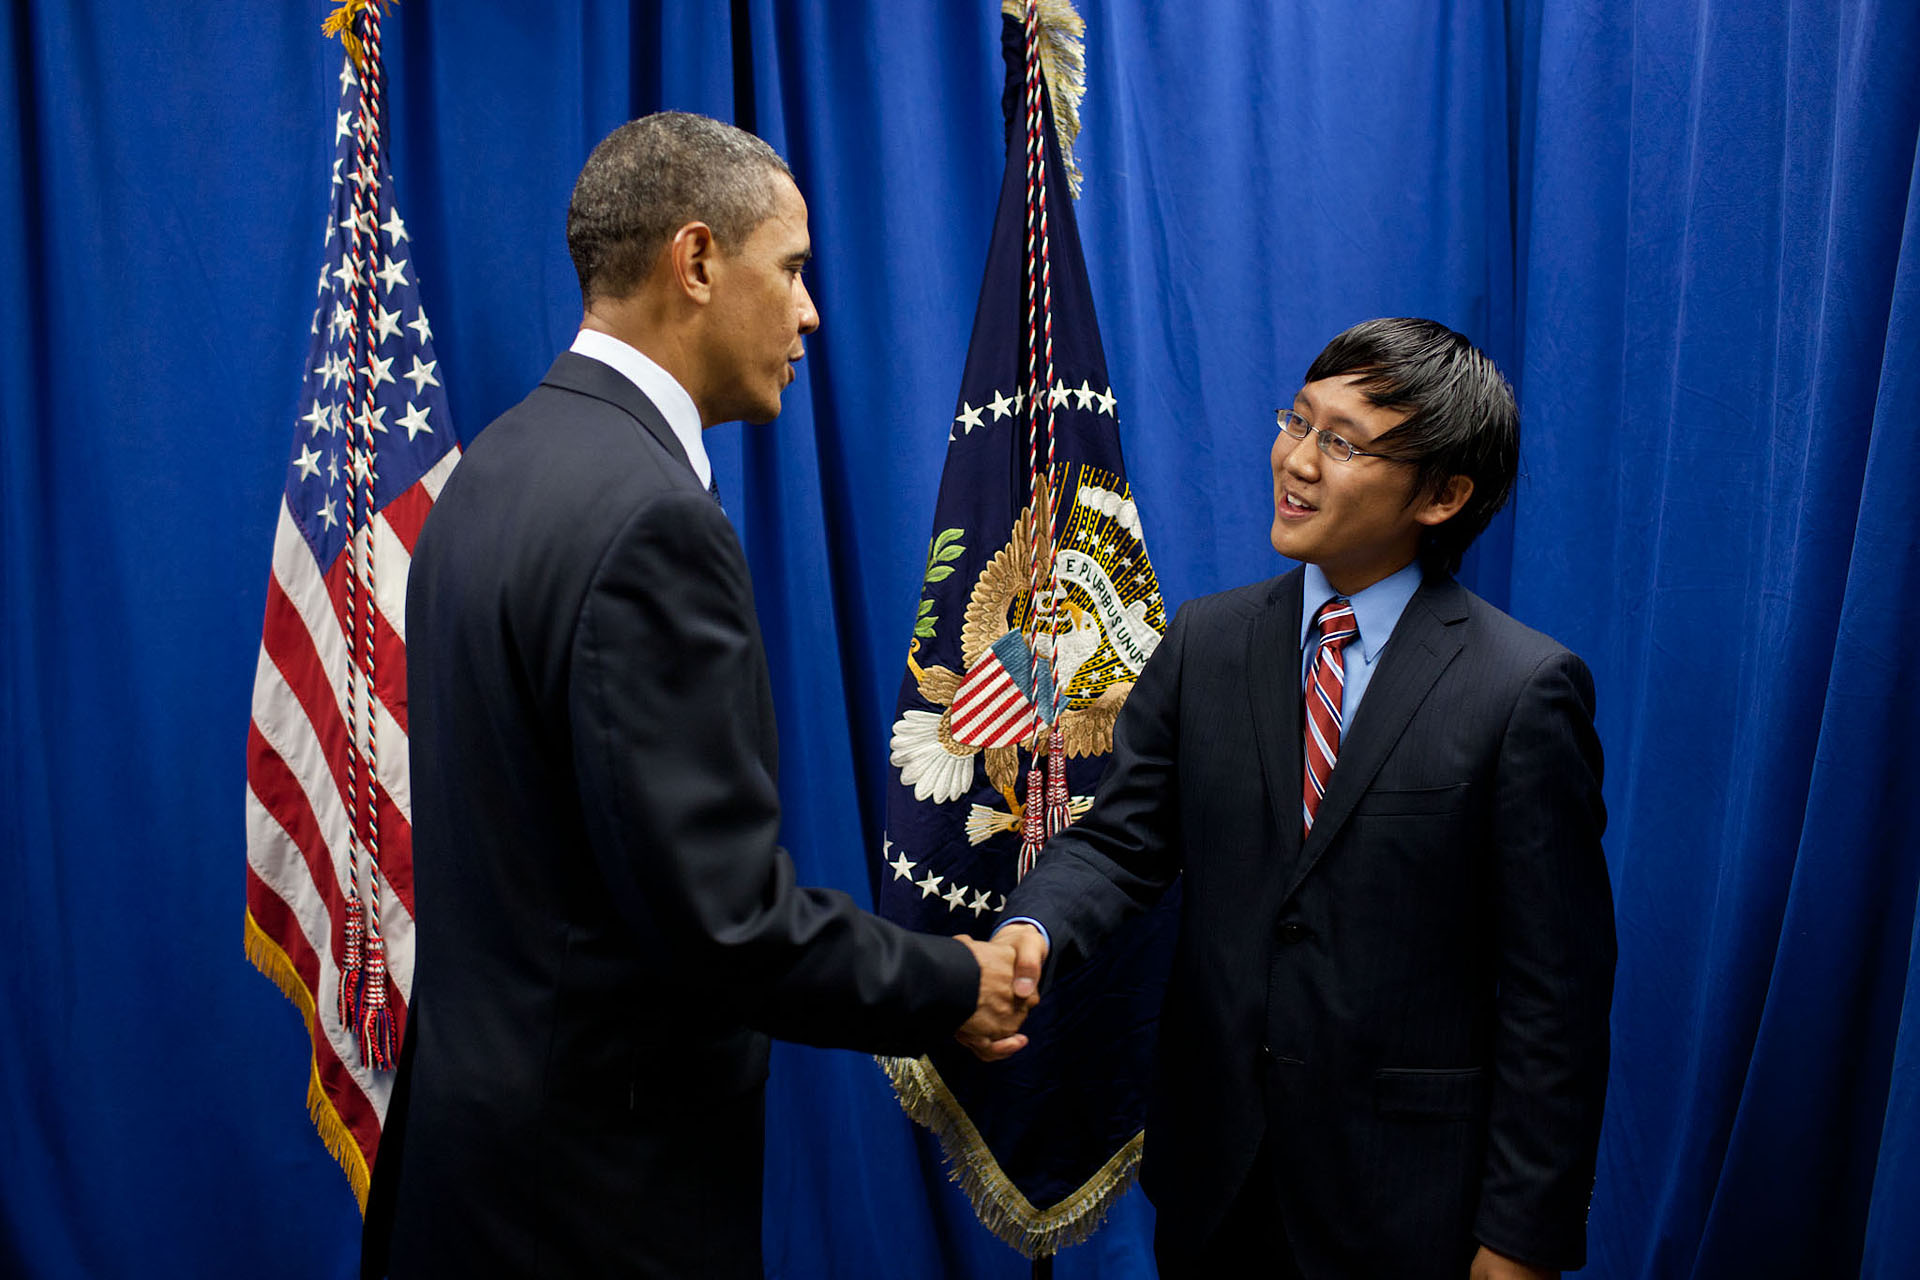 President Barack Obama greets University of Maryland Student Body President Kaiyi Xie